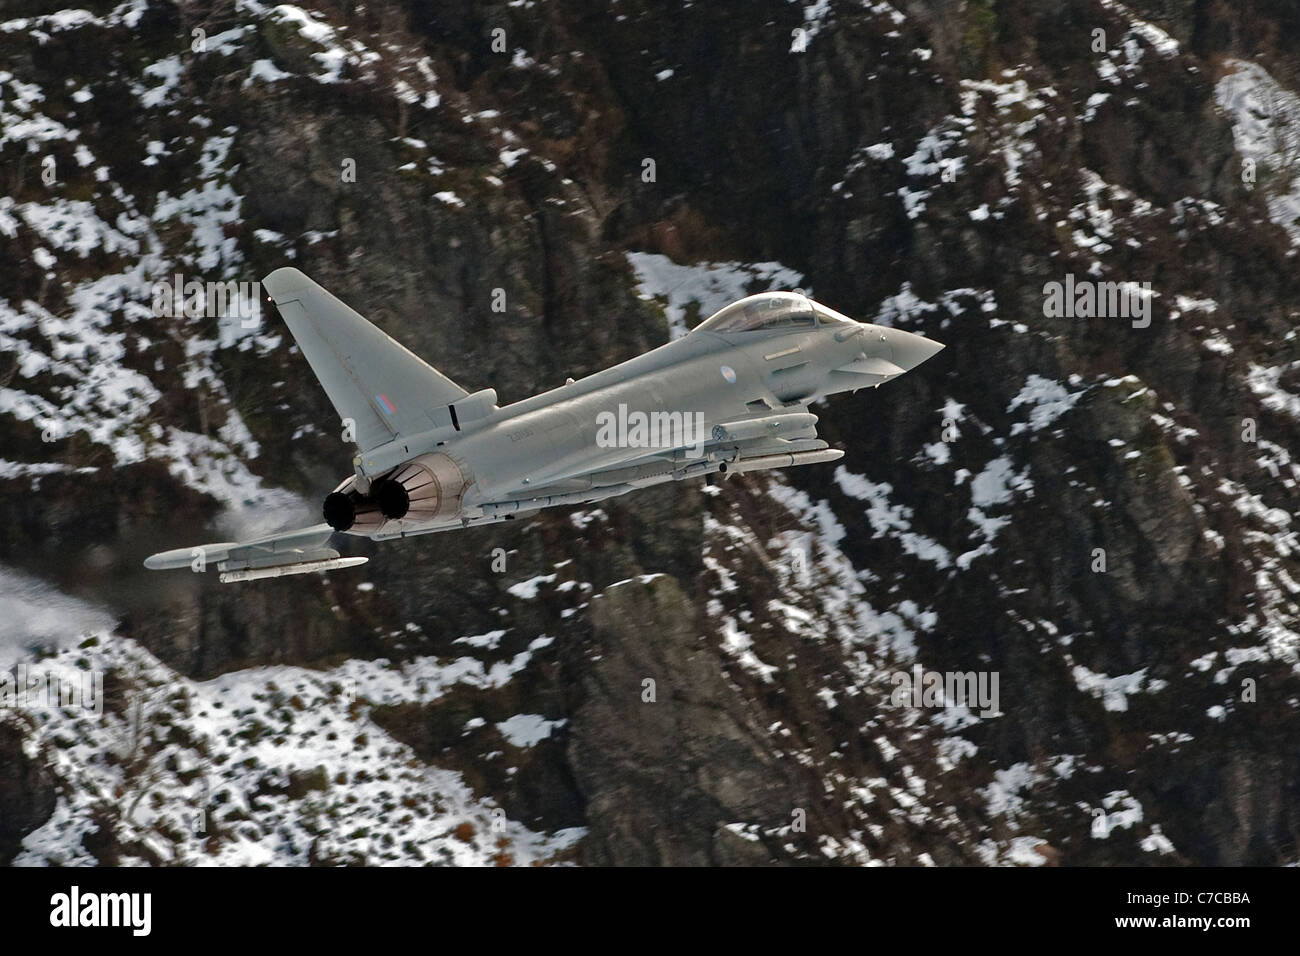 Royal Air Force Eurofighter Typhoon aircraft on a low flying training flight over the hills of mid Wales, shot from Stock Photo